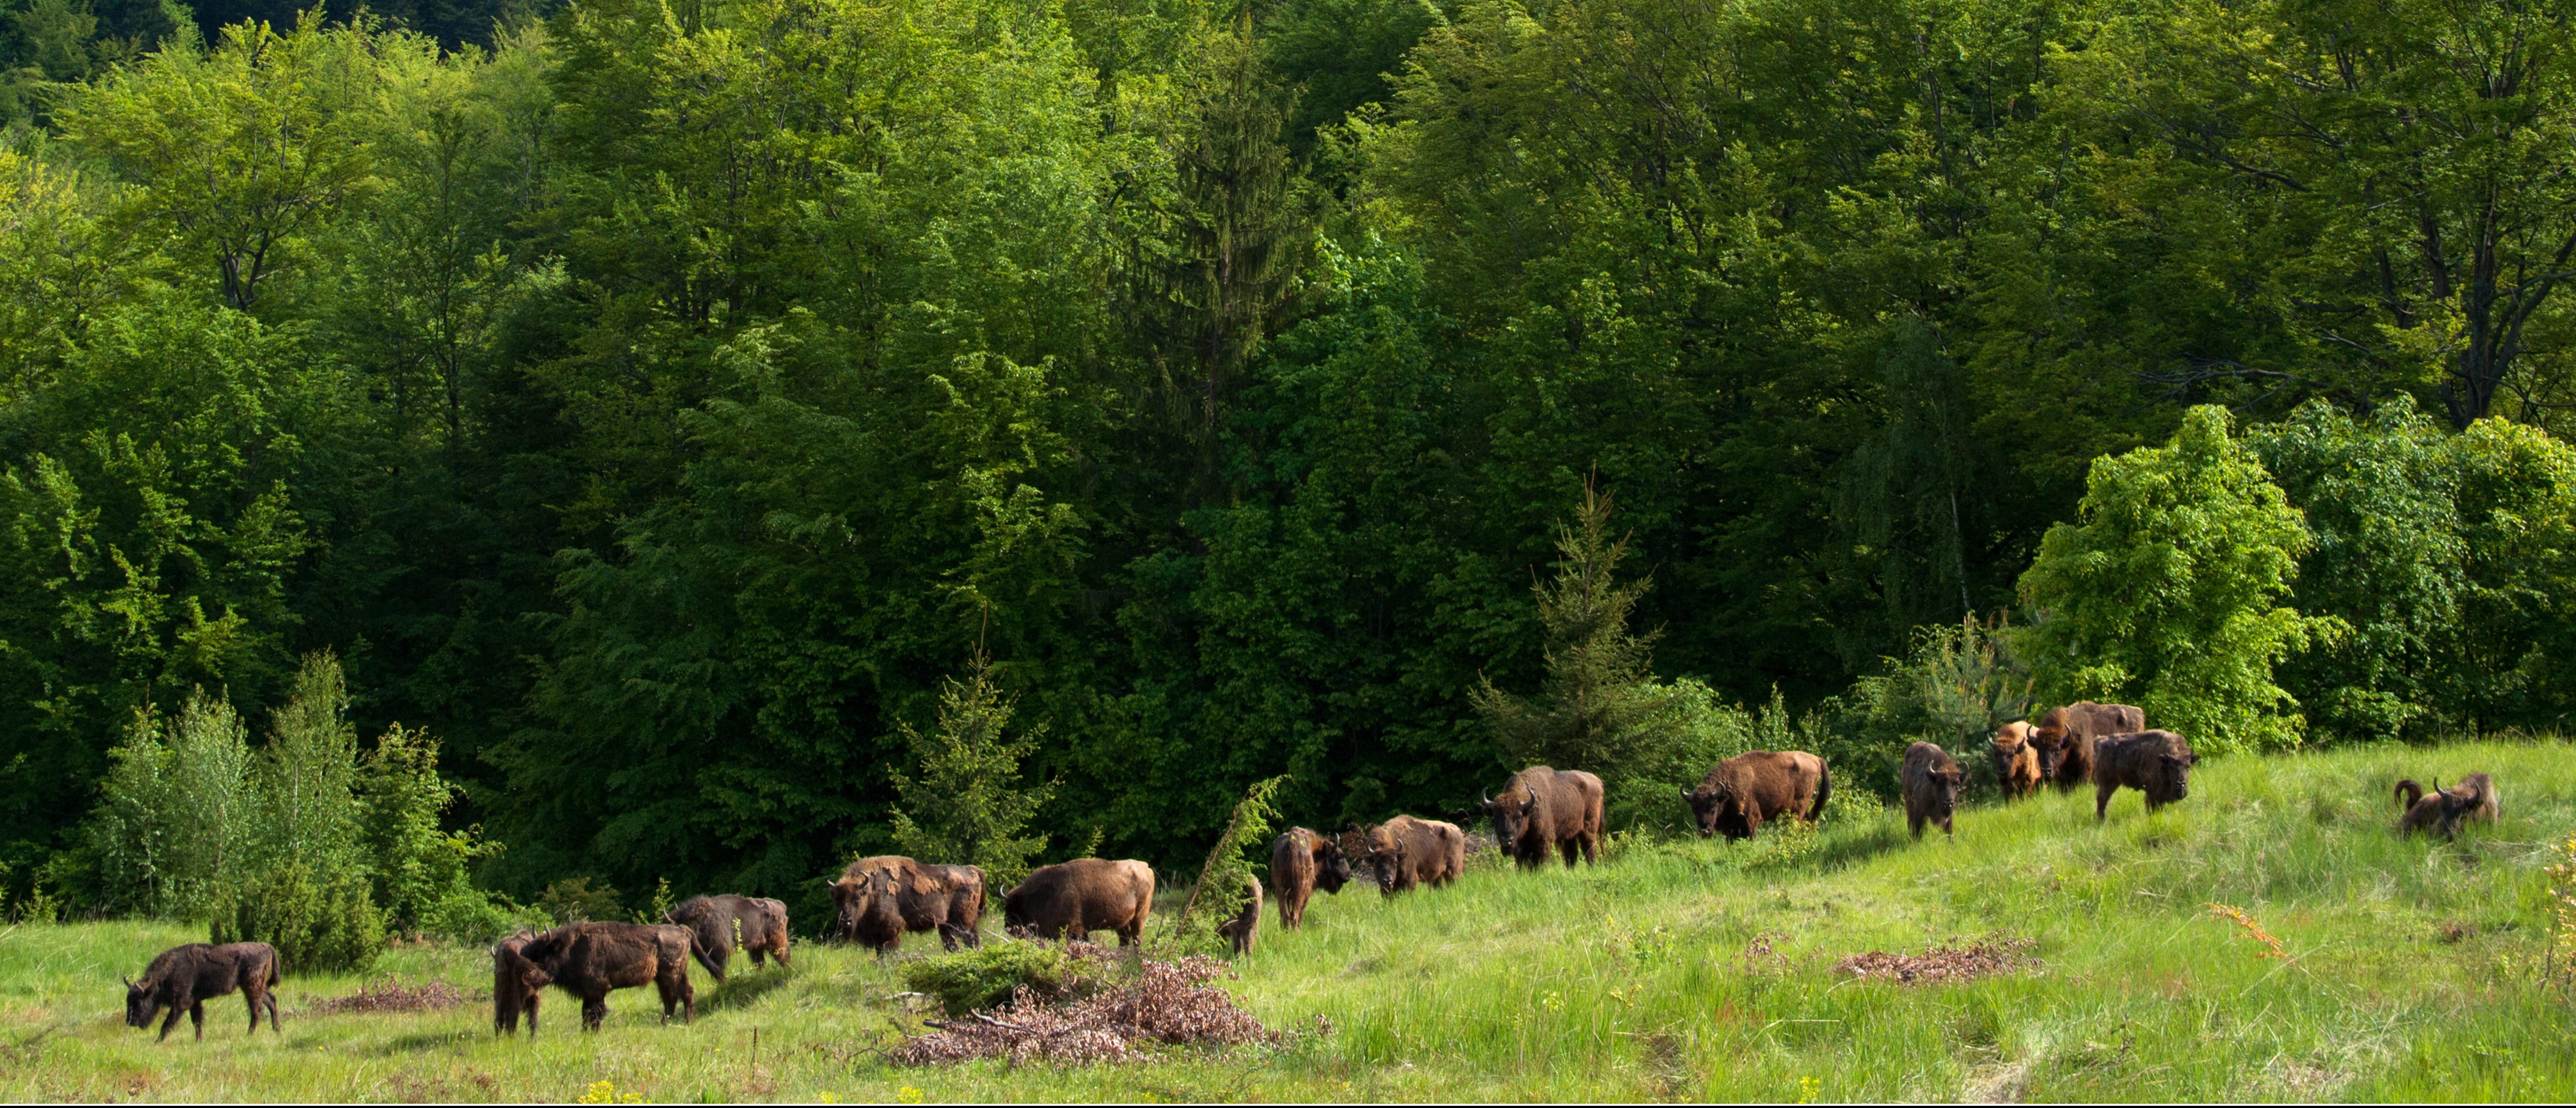 In late August nine European bison were released into the wild in the Țarcu Mountains, at the second of the Southern Carpathian rewilding areas.